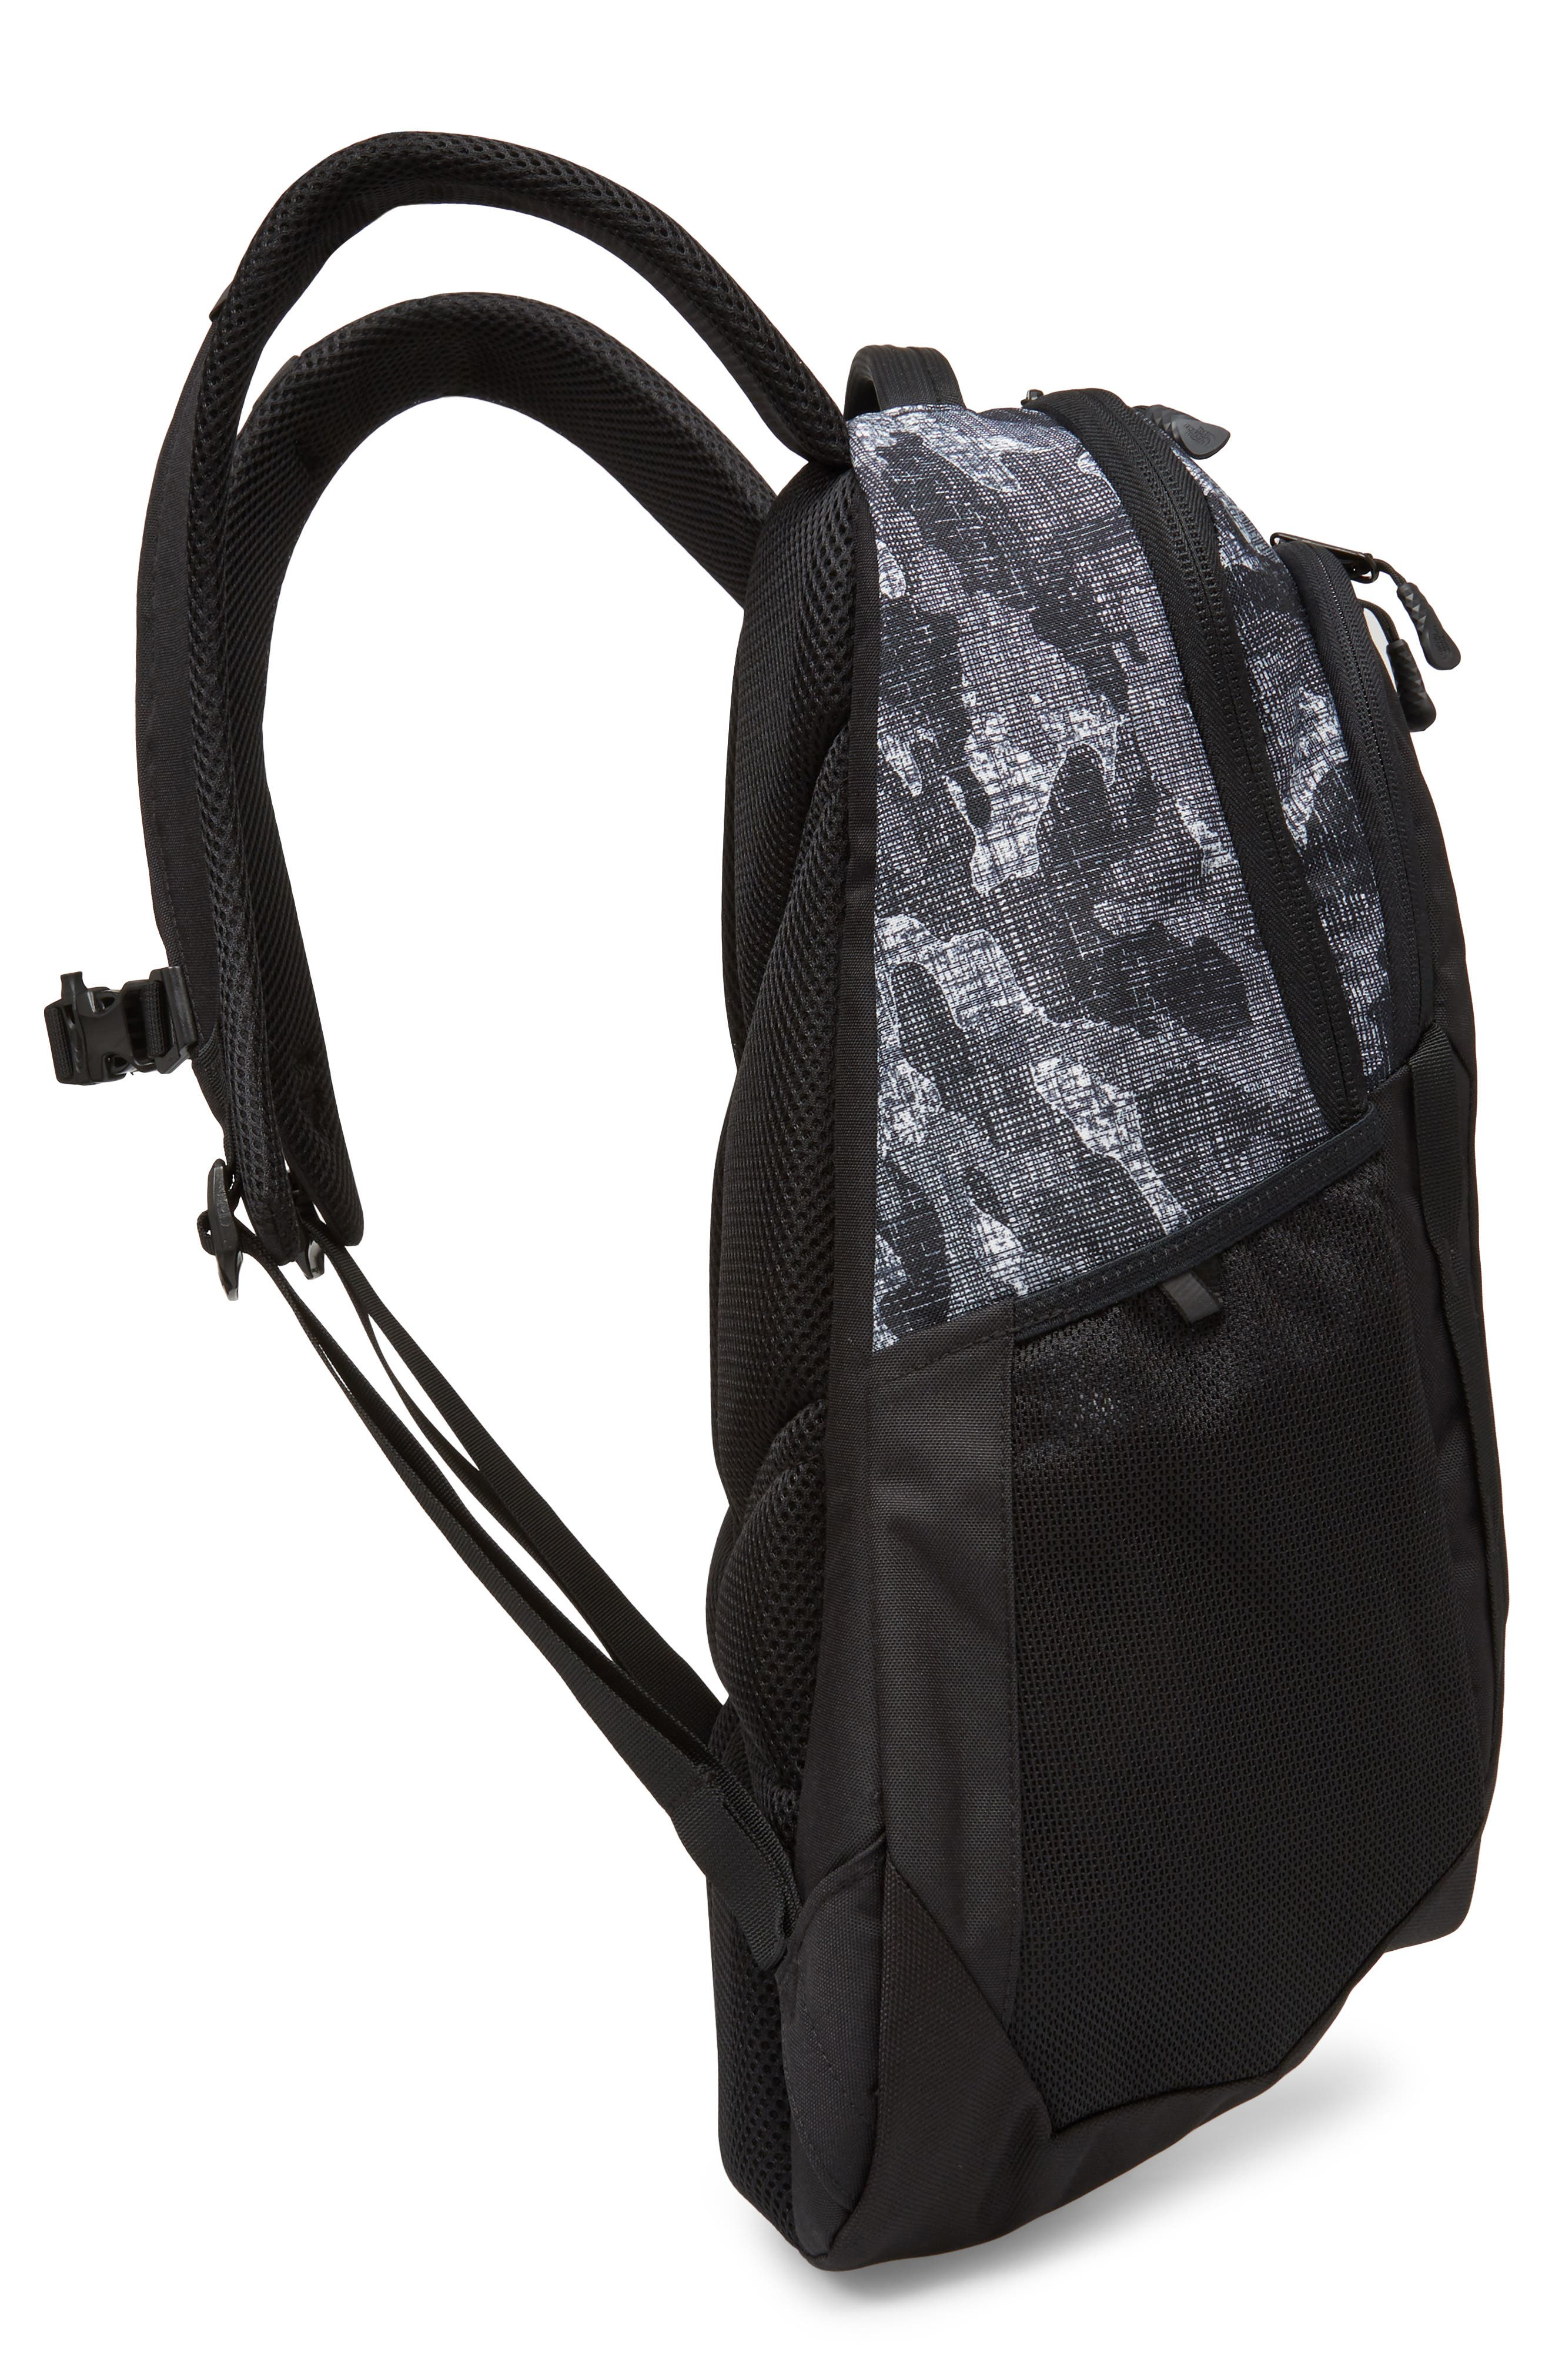 Vault Backpack,                             Alternate thumbnail 5, color,                             Tnf Black Textured Camo Print